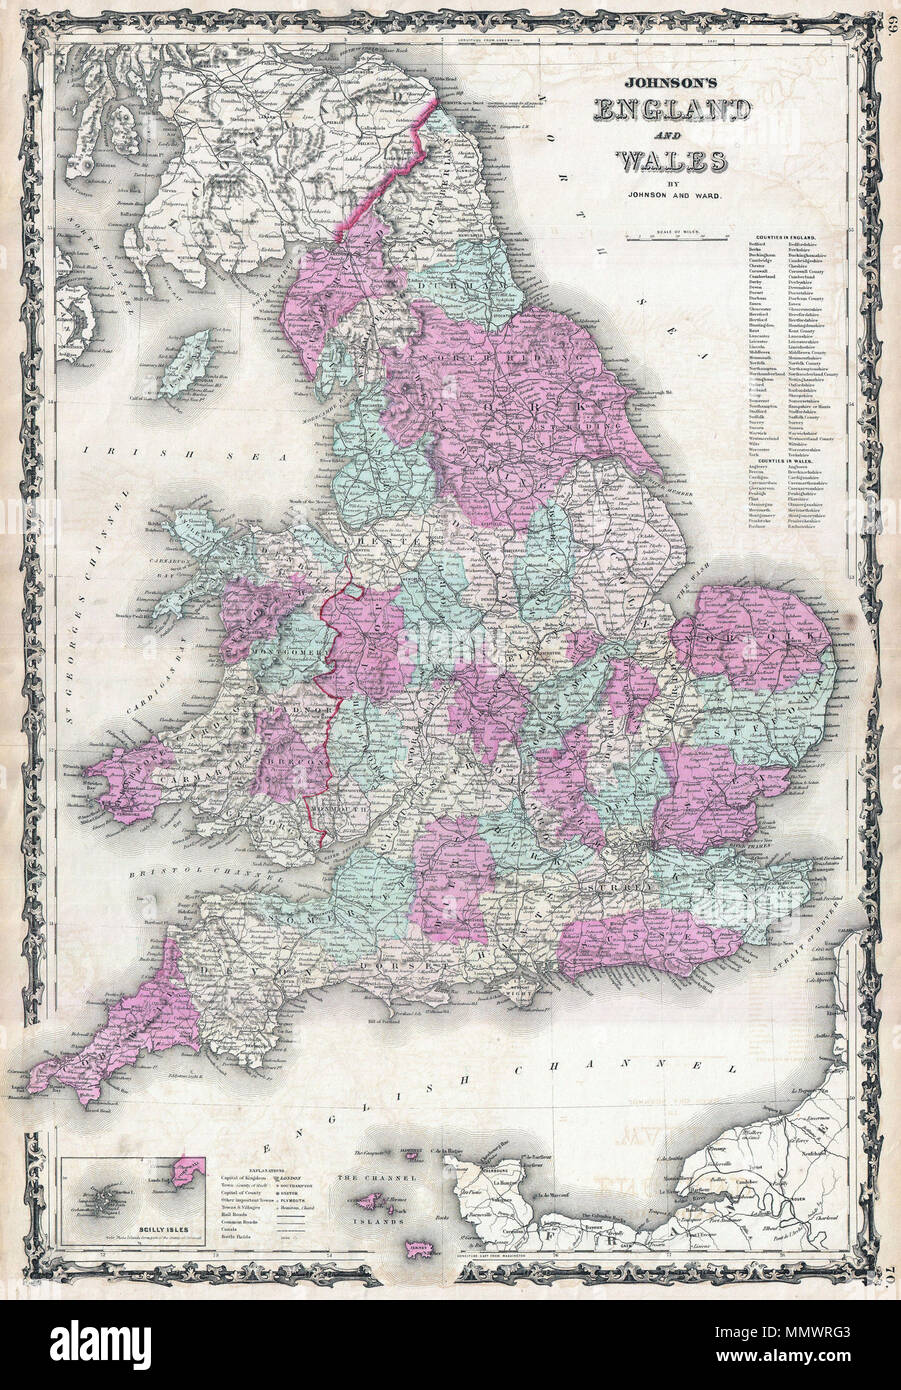 Map Of England With Counties And Major Cities.English This Is A J Johnson And Ward S 1862 Map Of England And